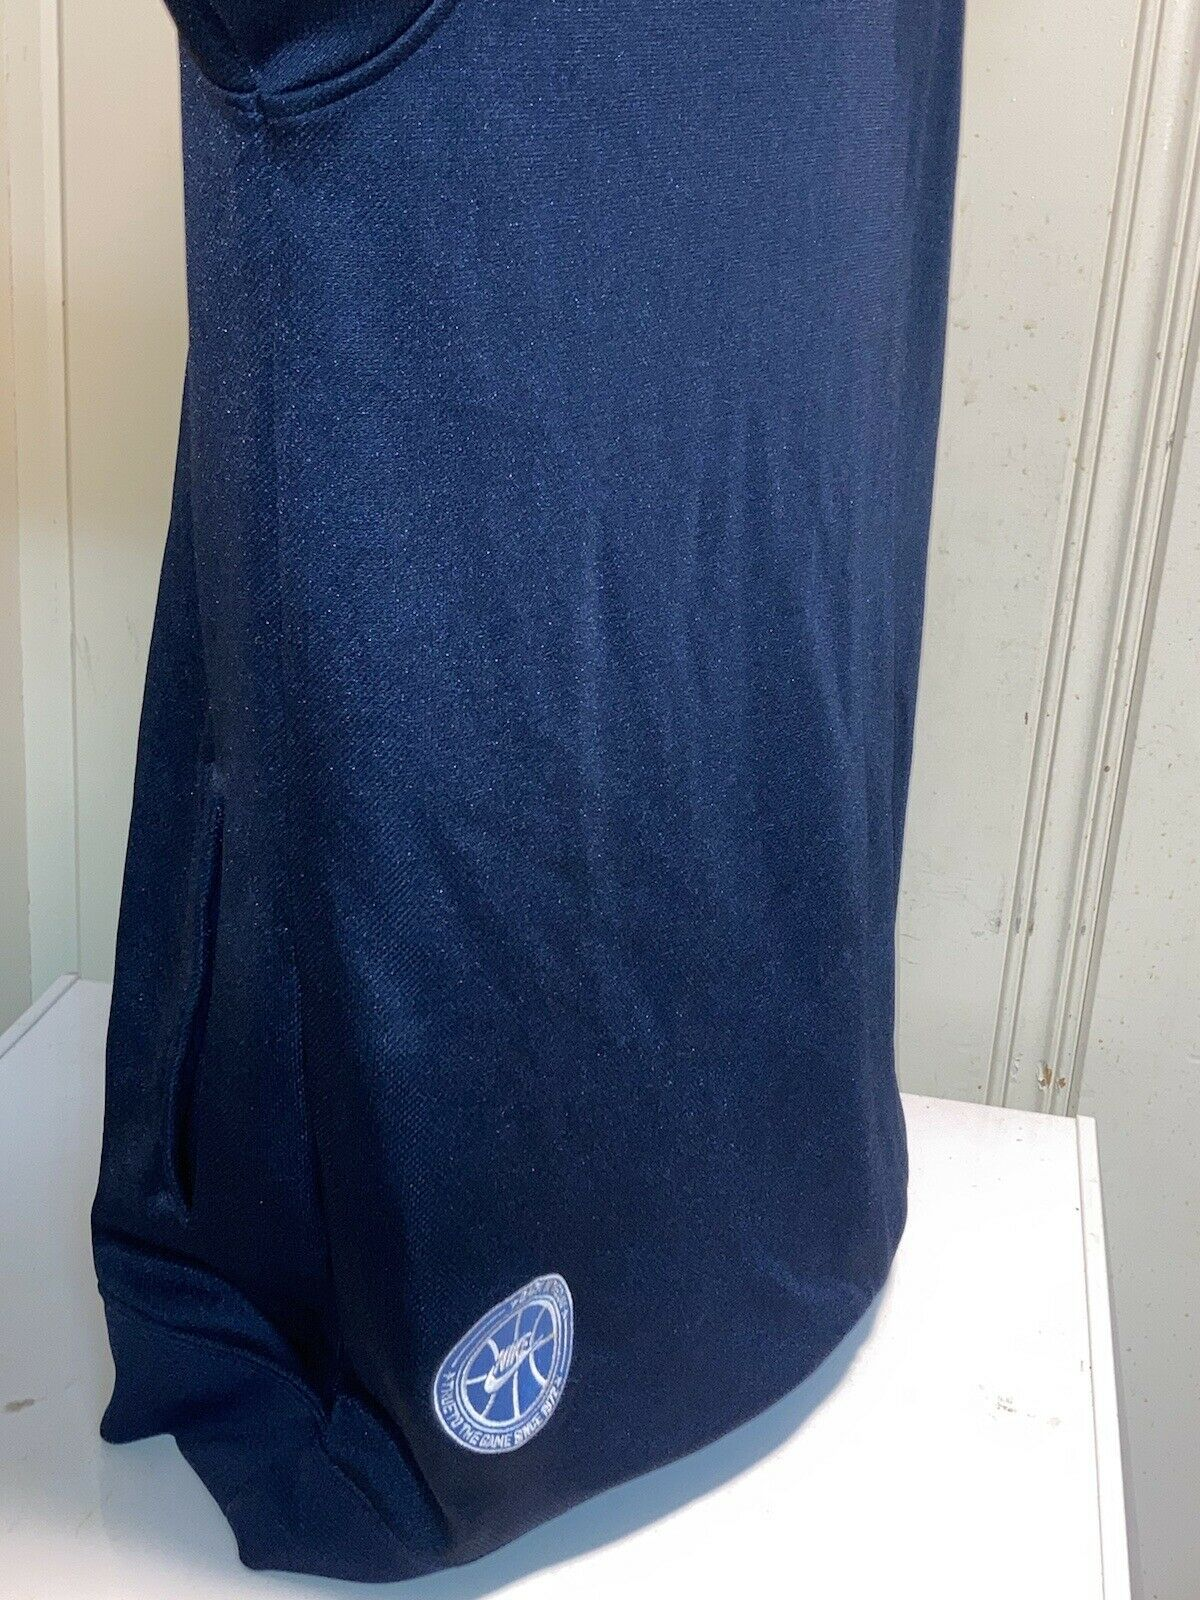 vintage 90s blue and white Nike swoosh hoodie XL … - image 6